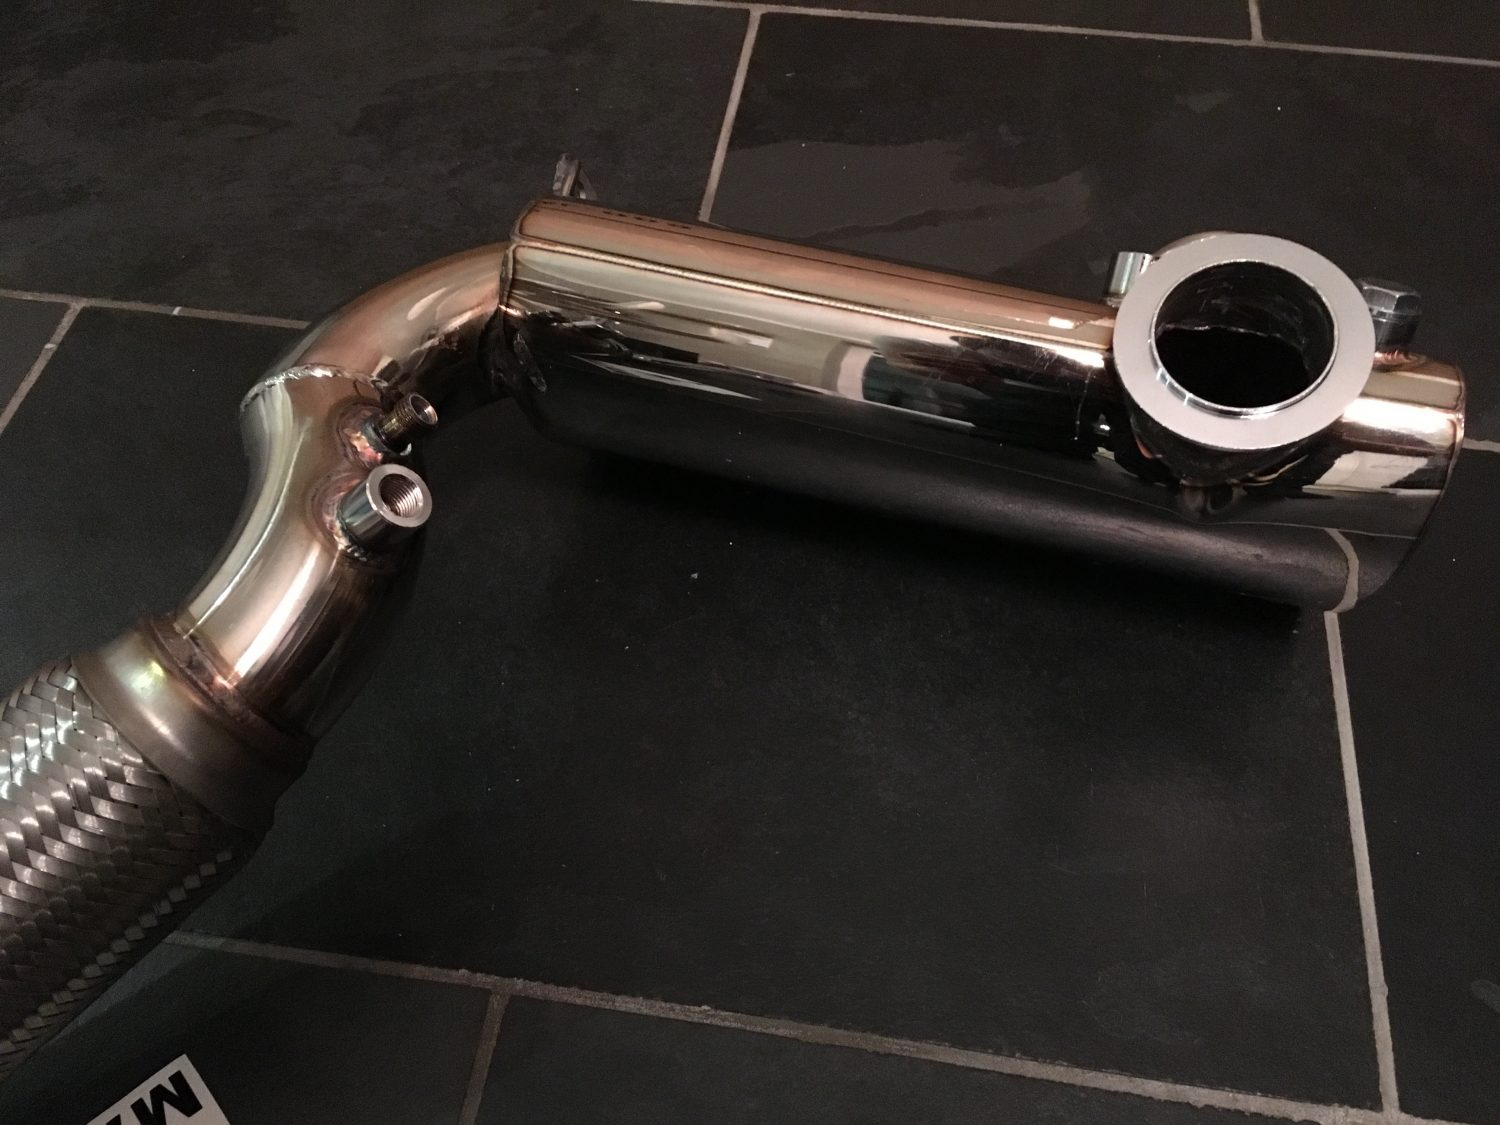 Skoda Octavia VRS 2 0 TDi DPF Removal Stainless Performance Exhaust Pipe